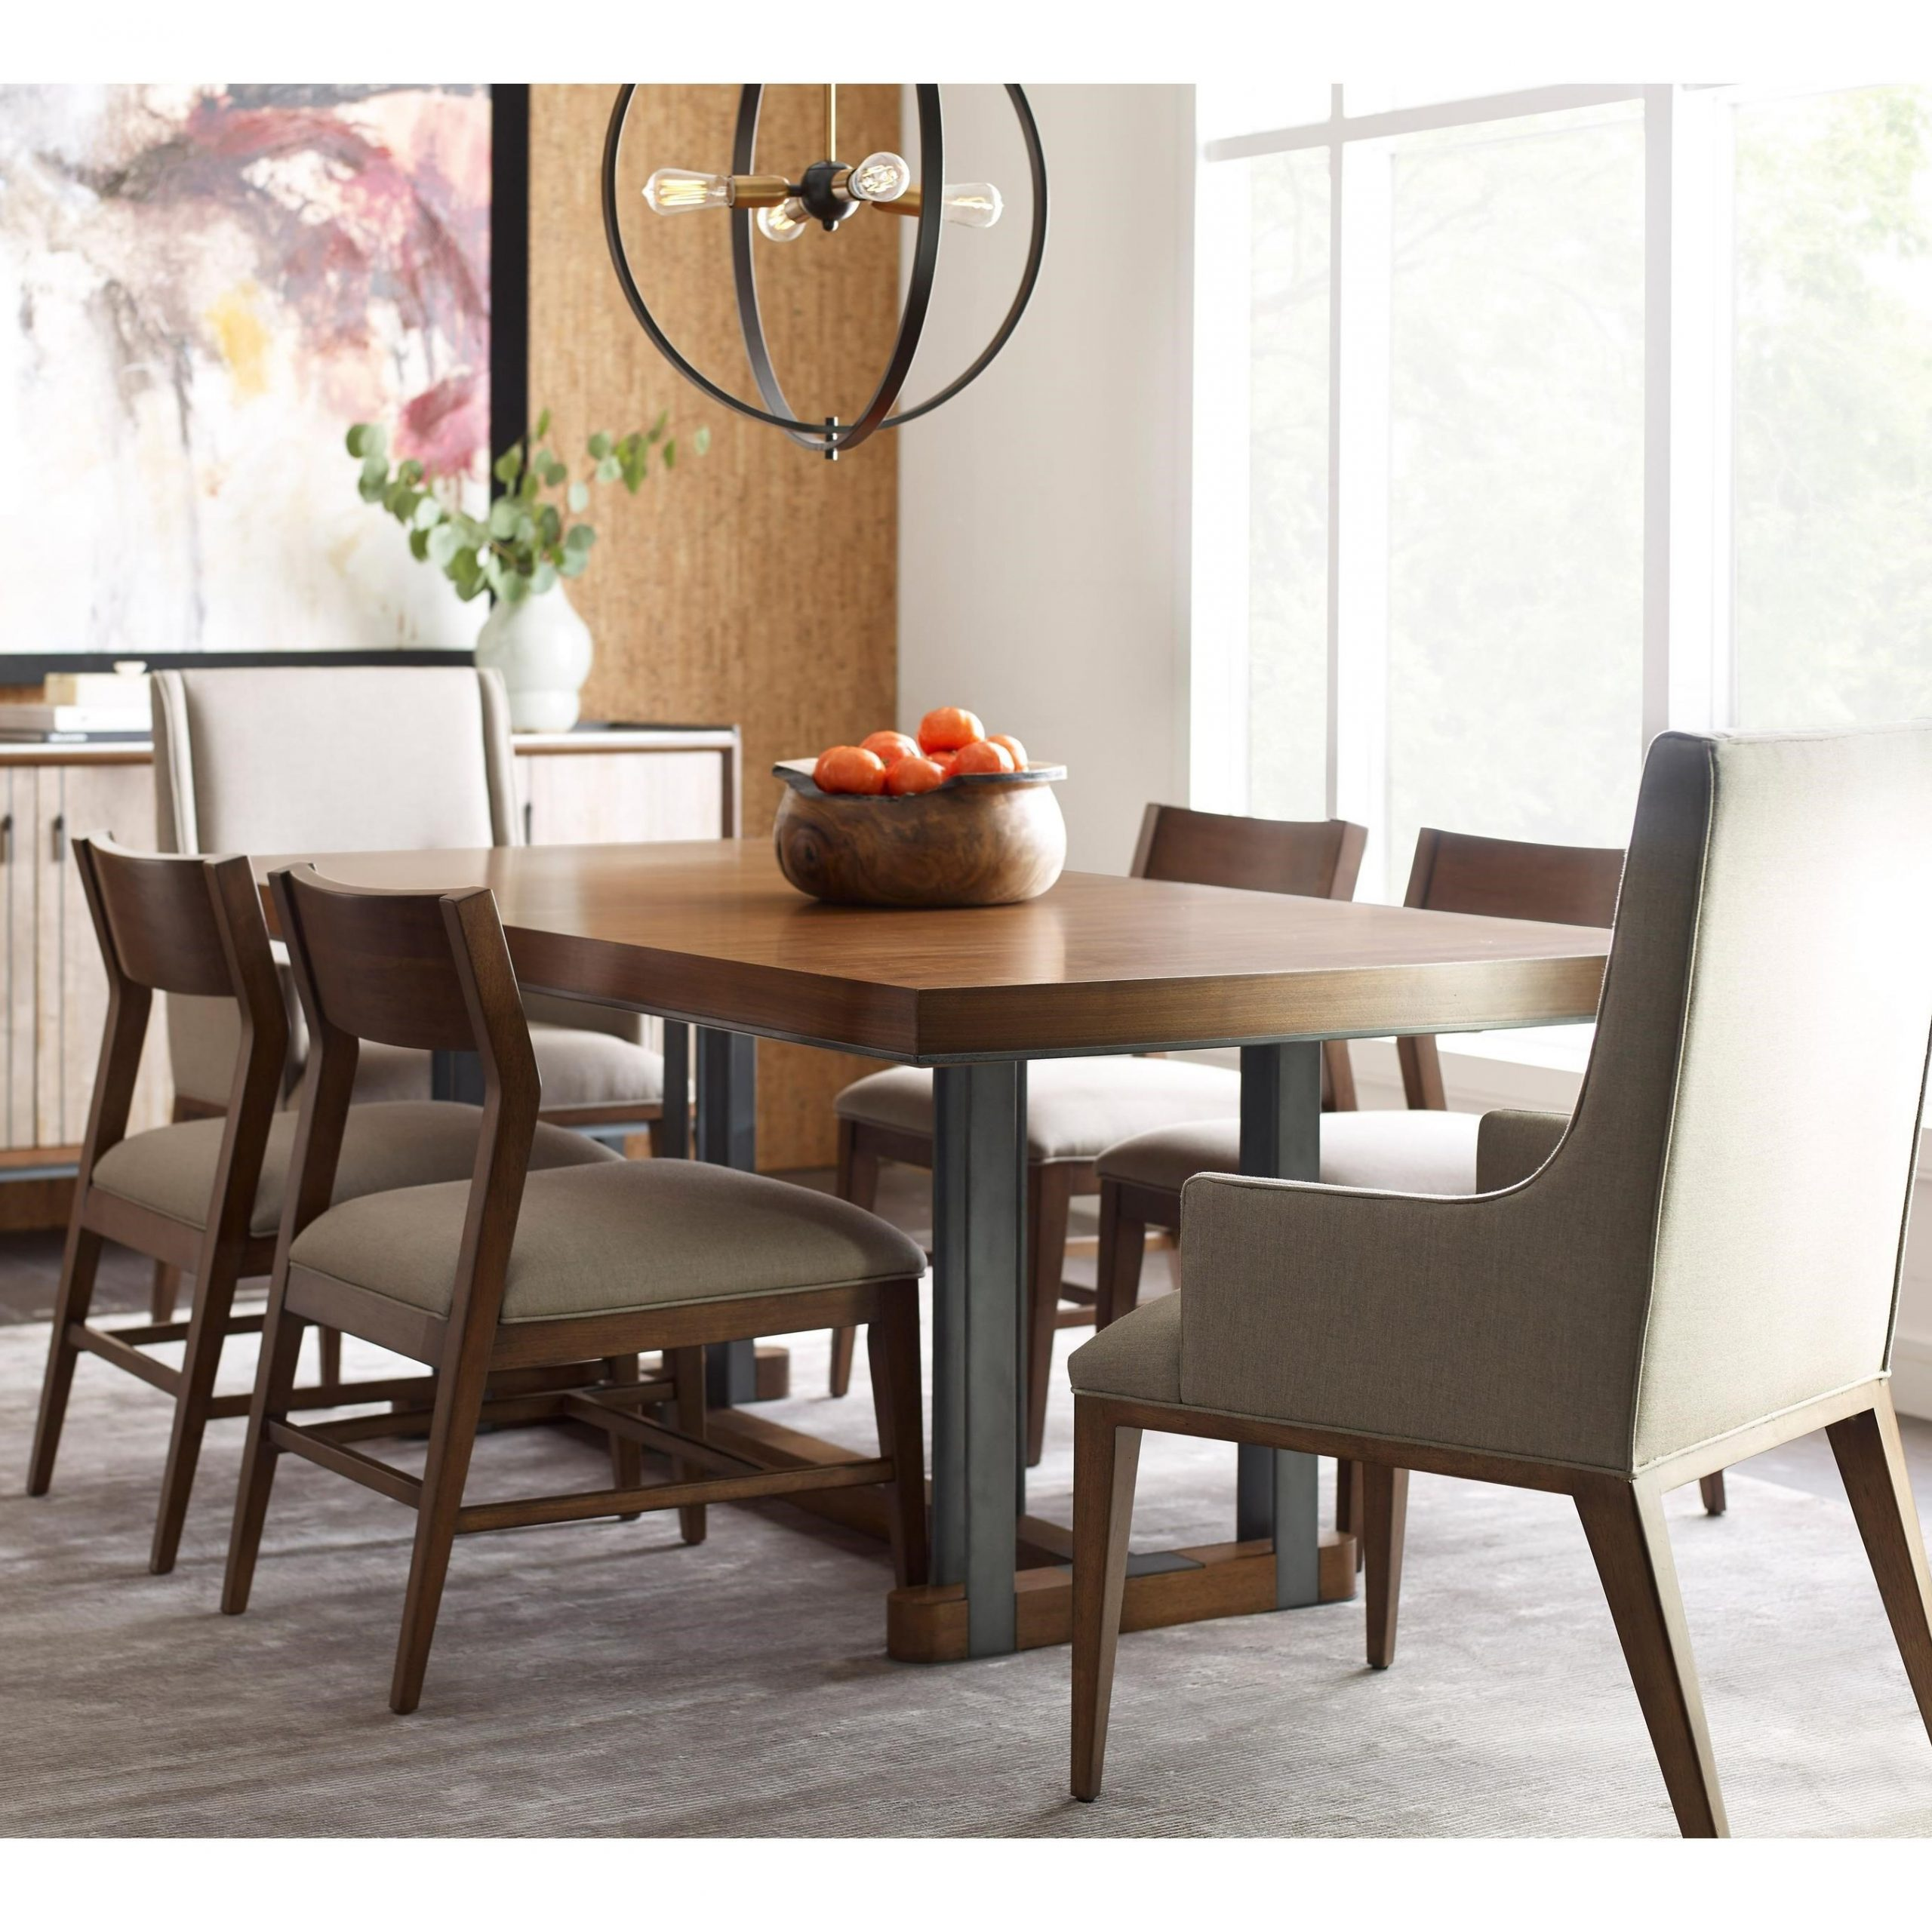 Contemporary Rectangular Dining Tables Regarding Most Recent American Drew Modern Synergy Contemporary Rectangular Dining (View 14 of 30)